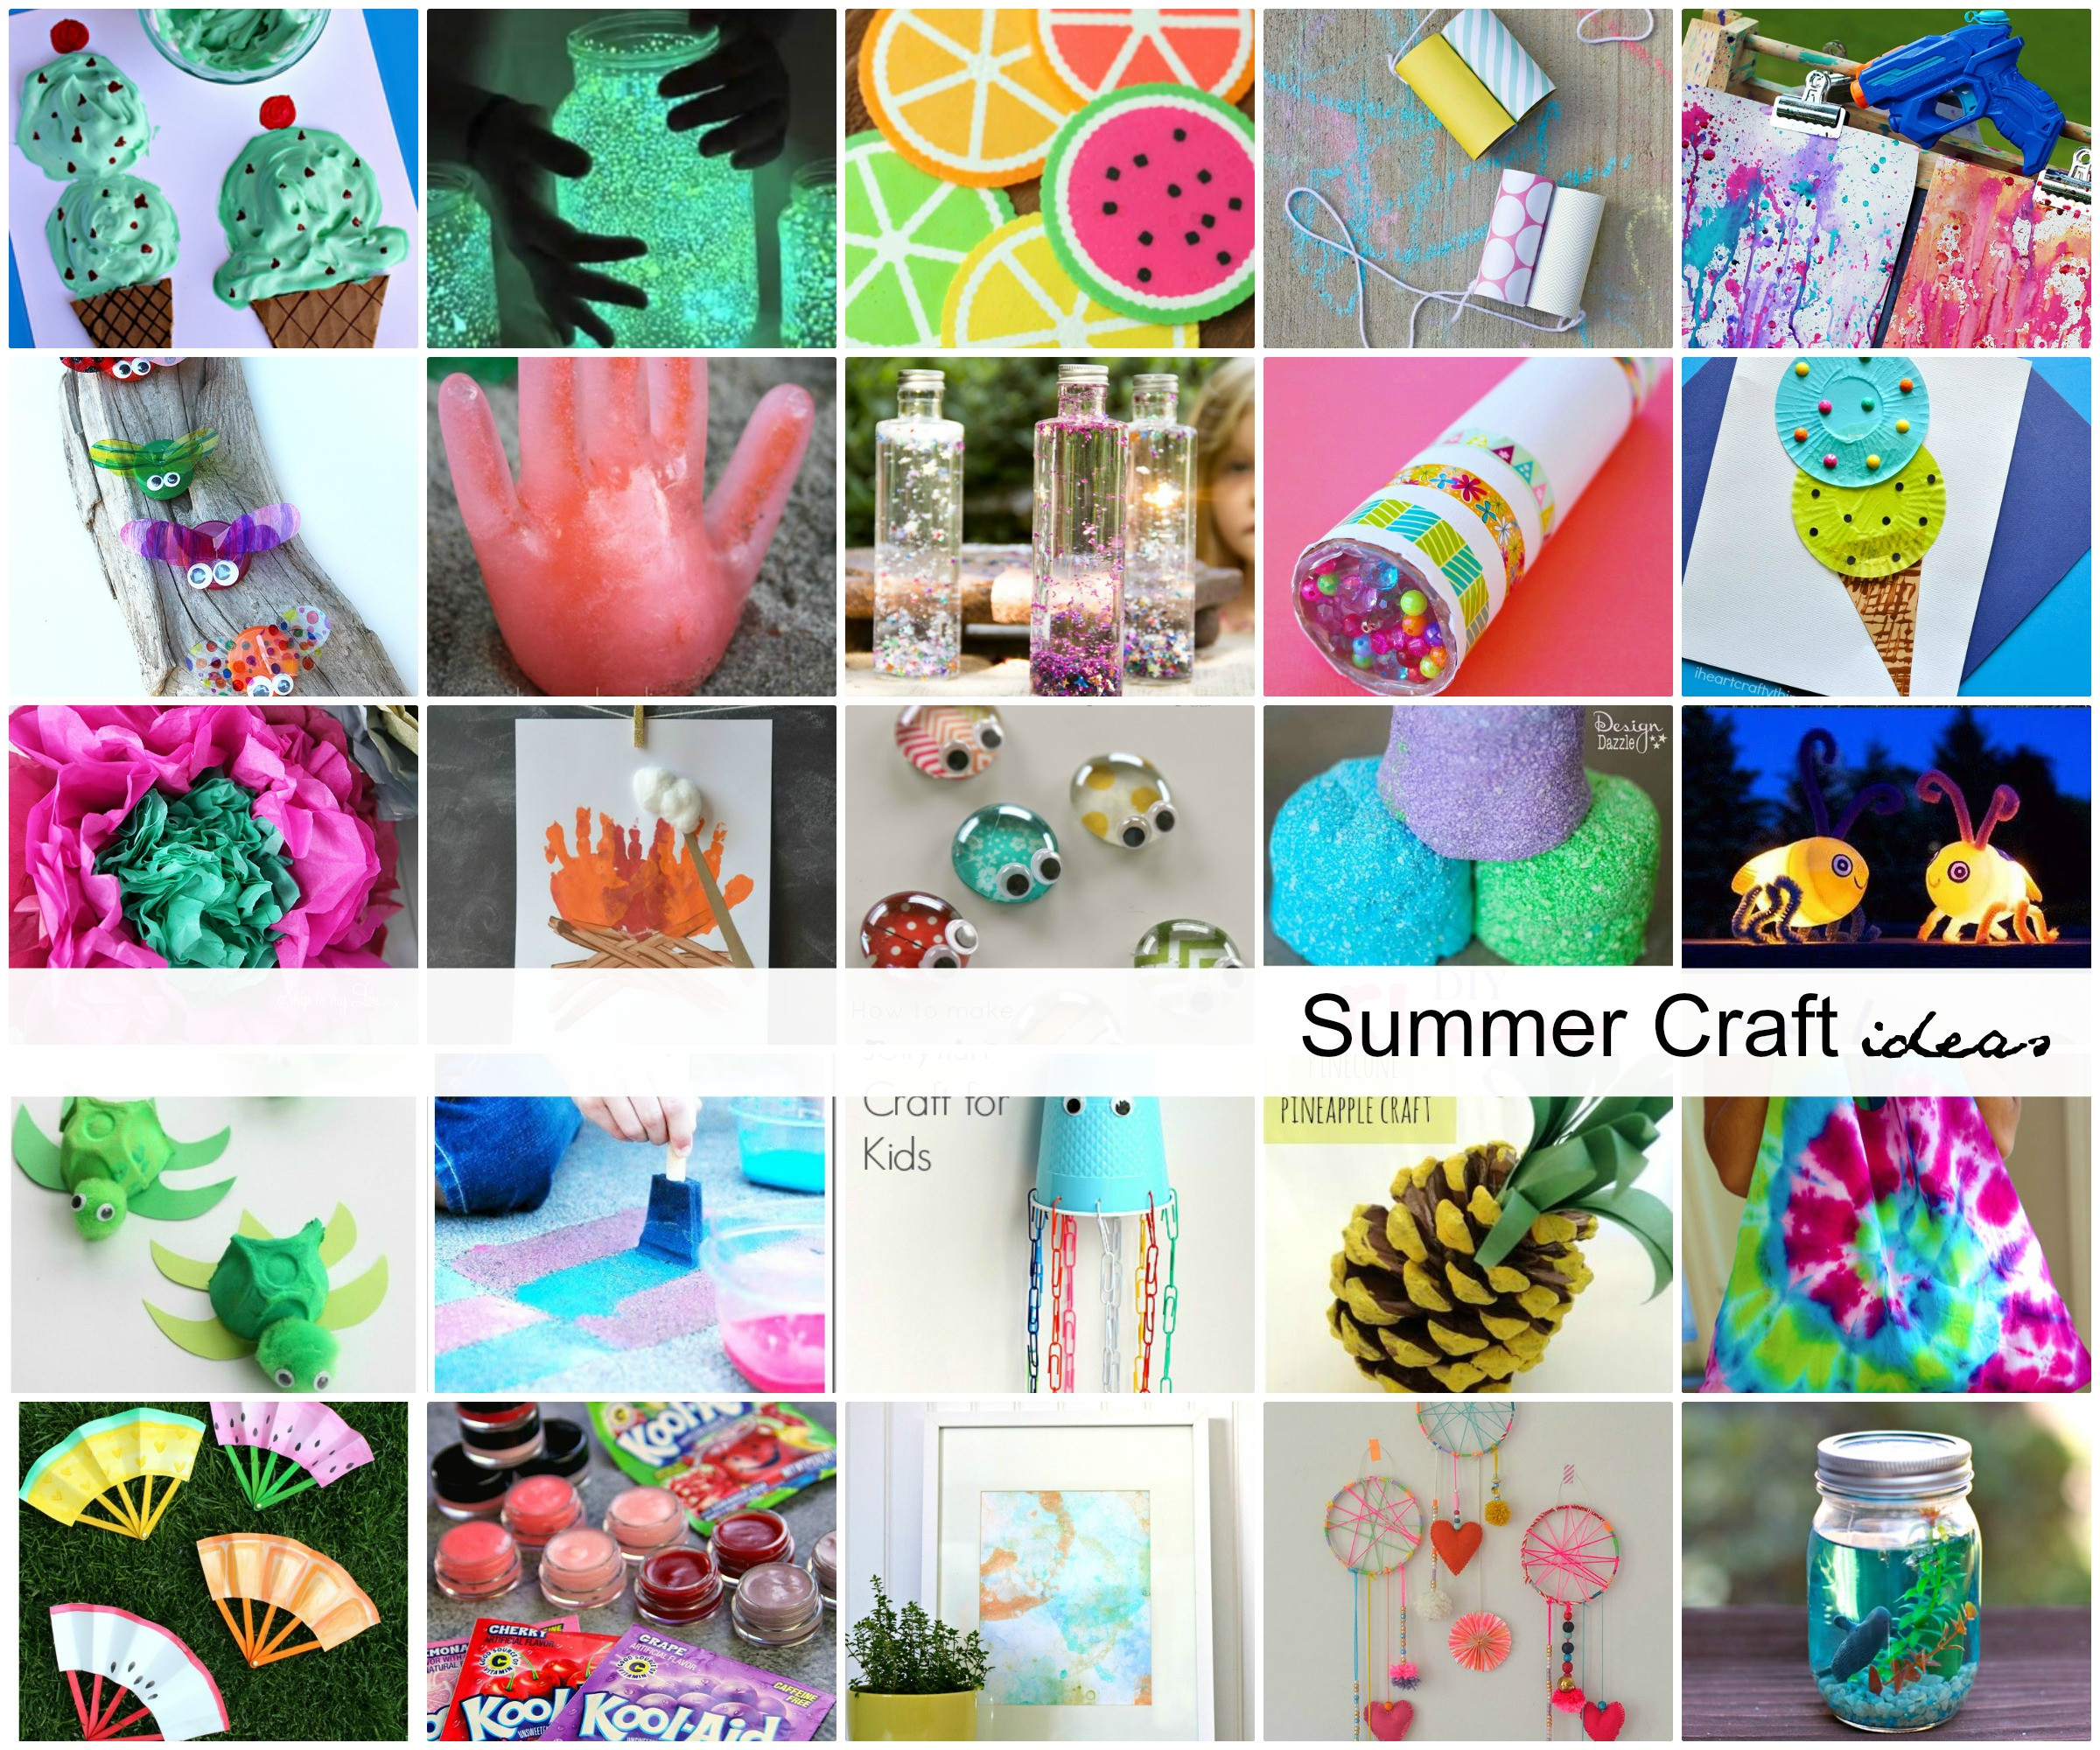 Best ideas about Kids Craft Ideas . Save or Pin Summer Craft Ideas for Kids The Idea Room Now.